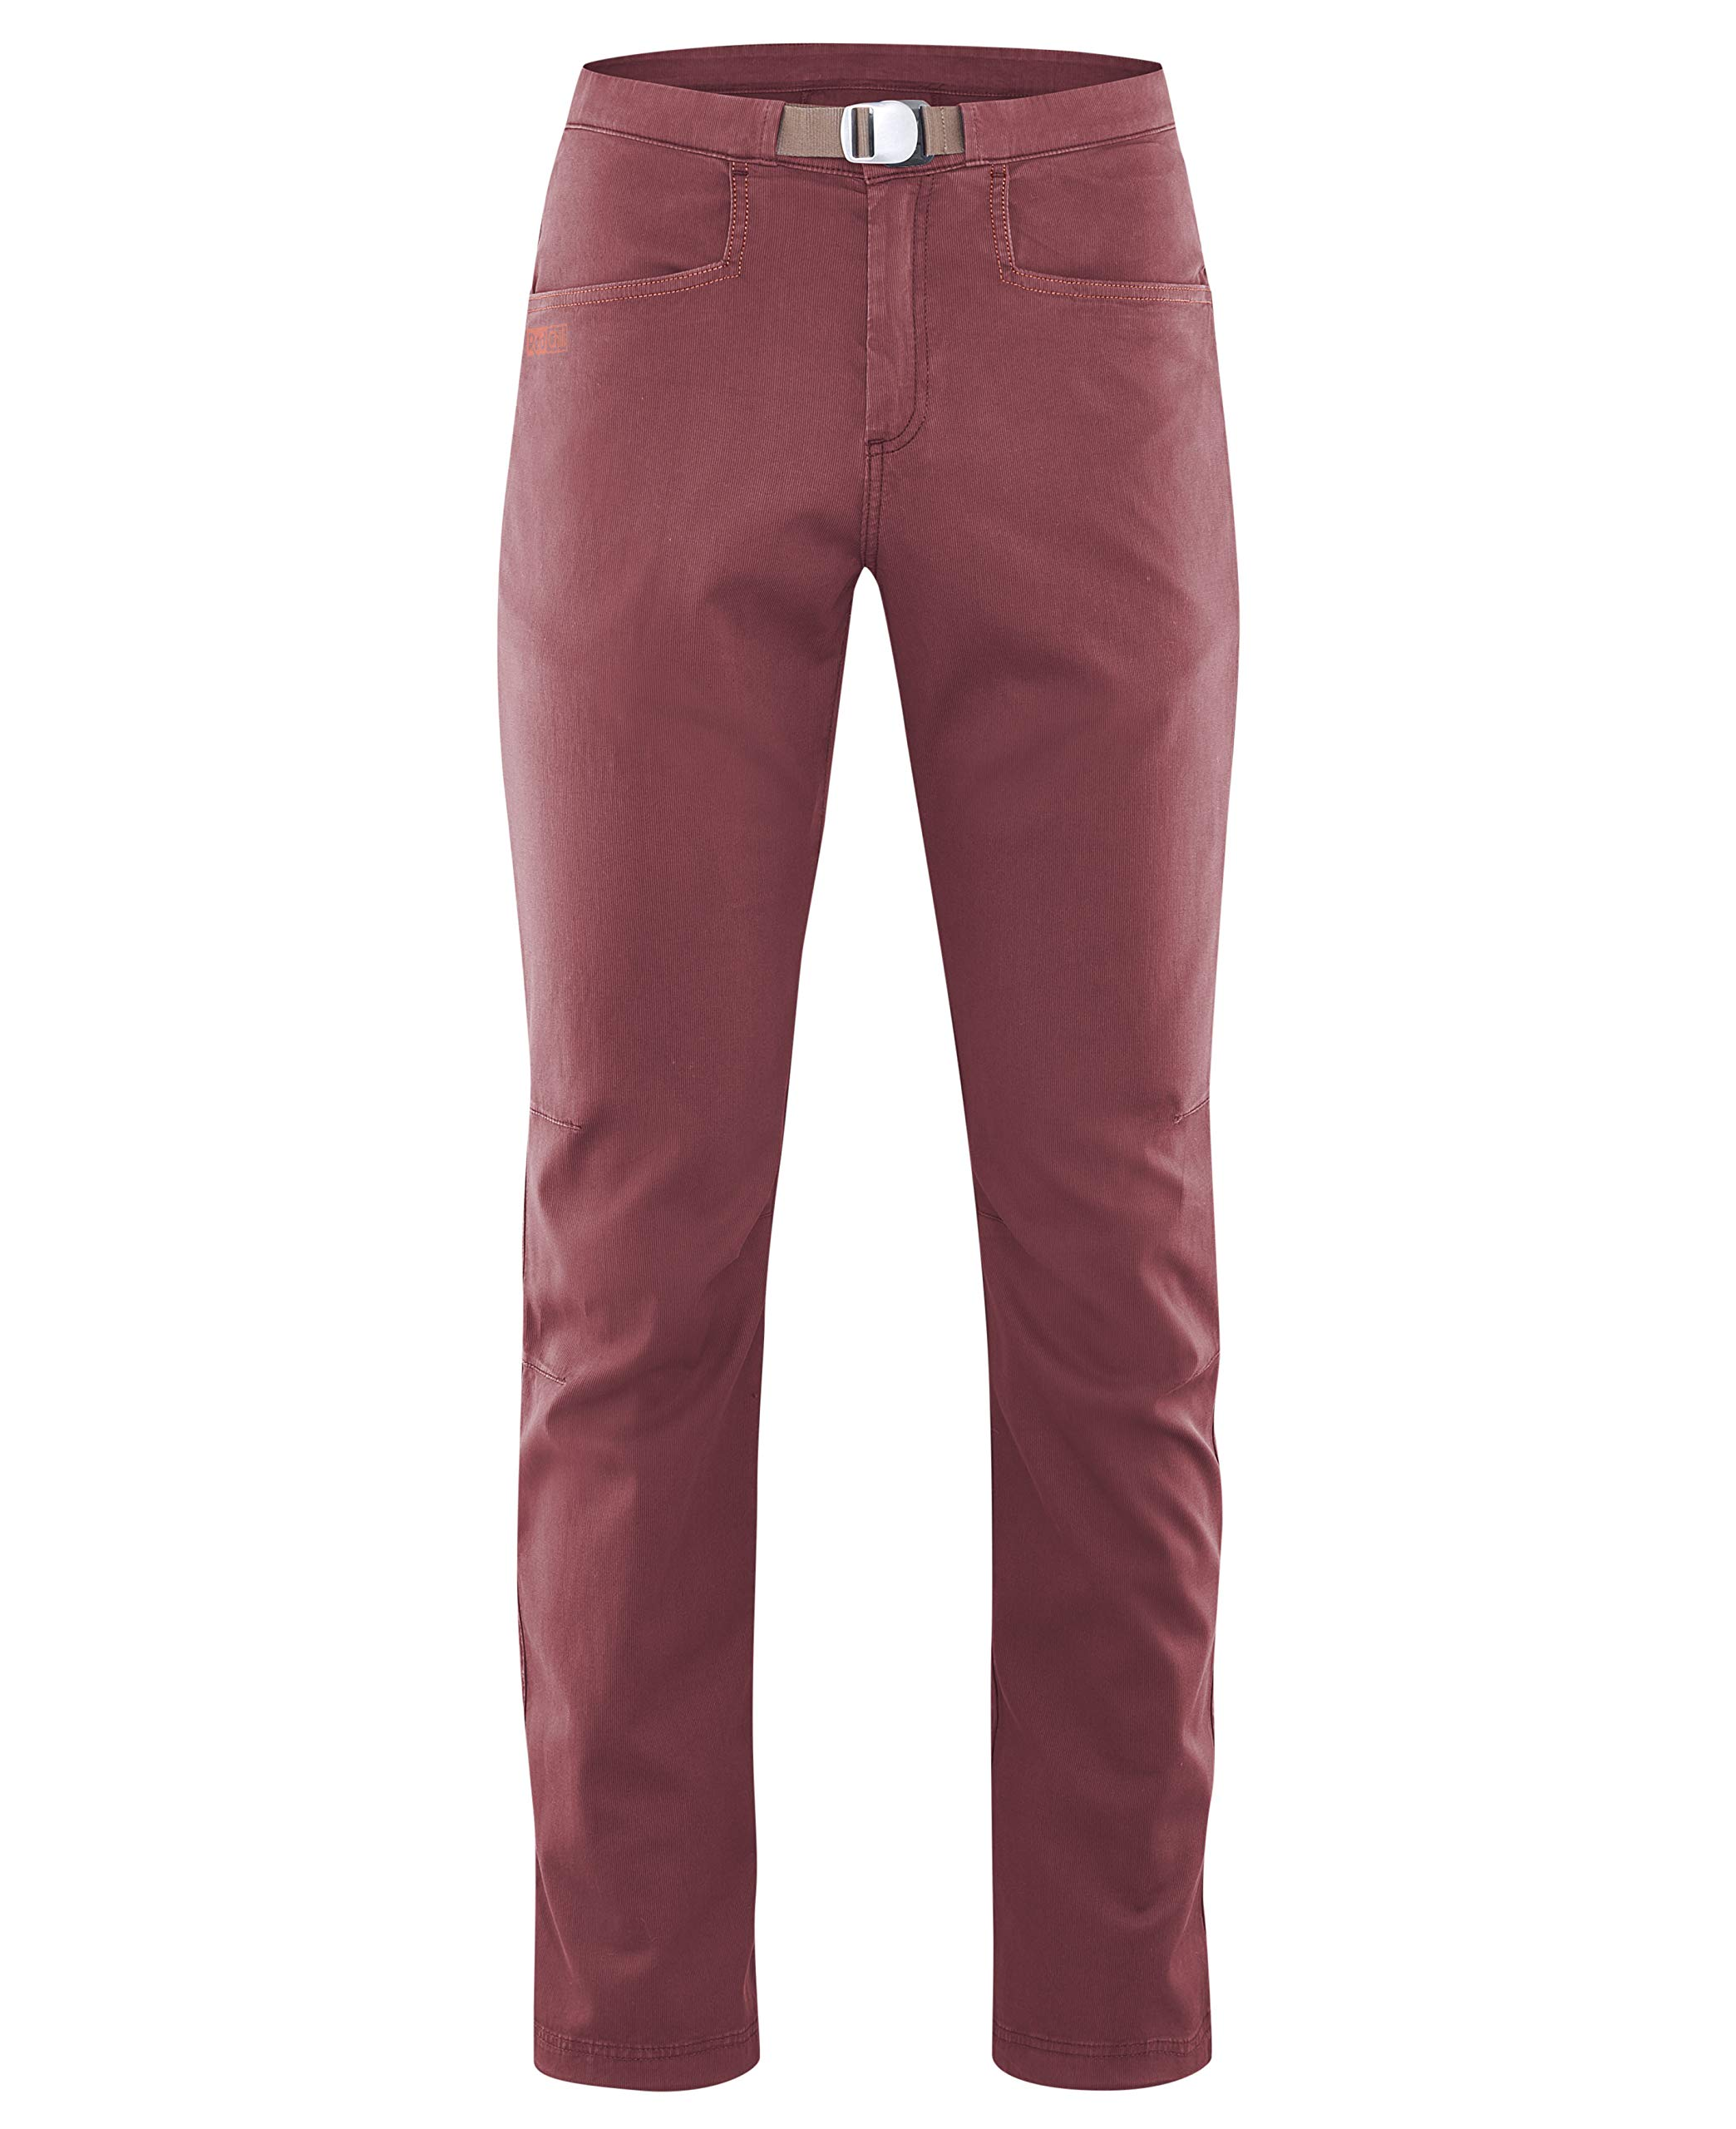 Red Chili Herren Me Mescalito Pants, Tuna, S